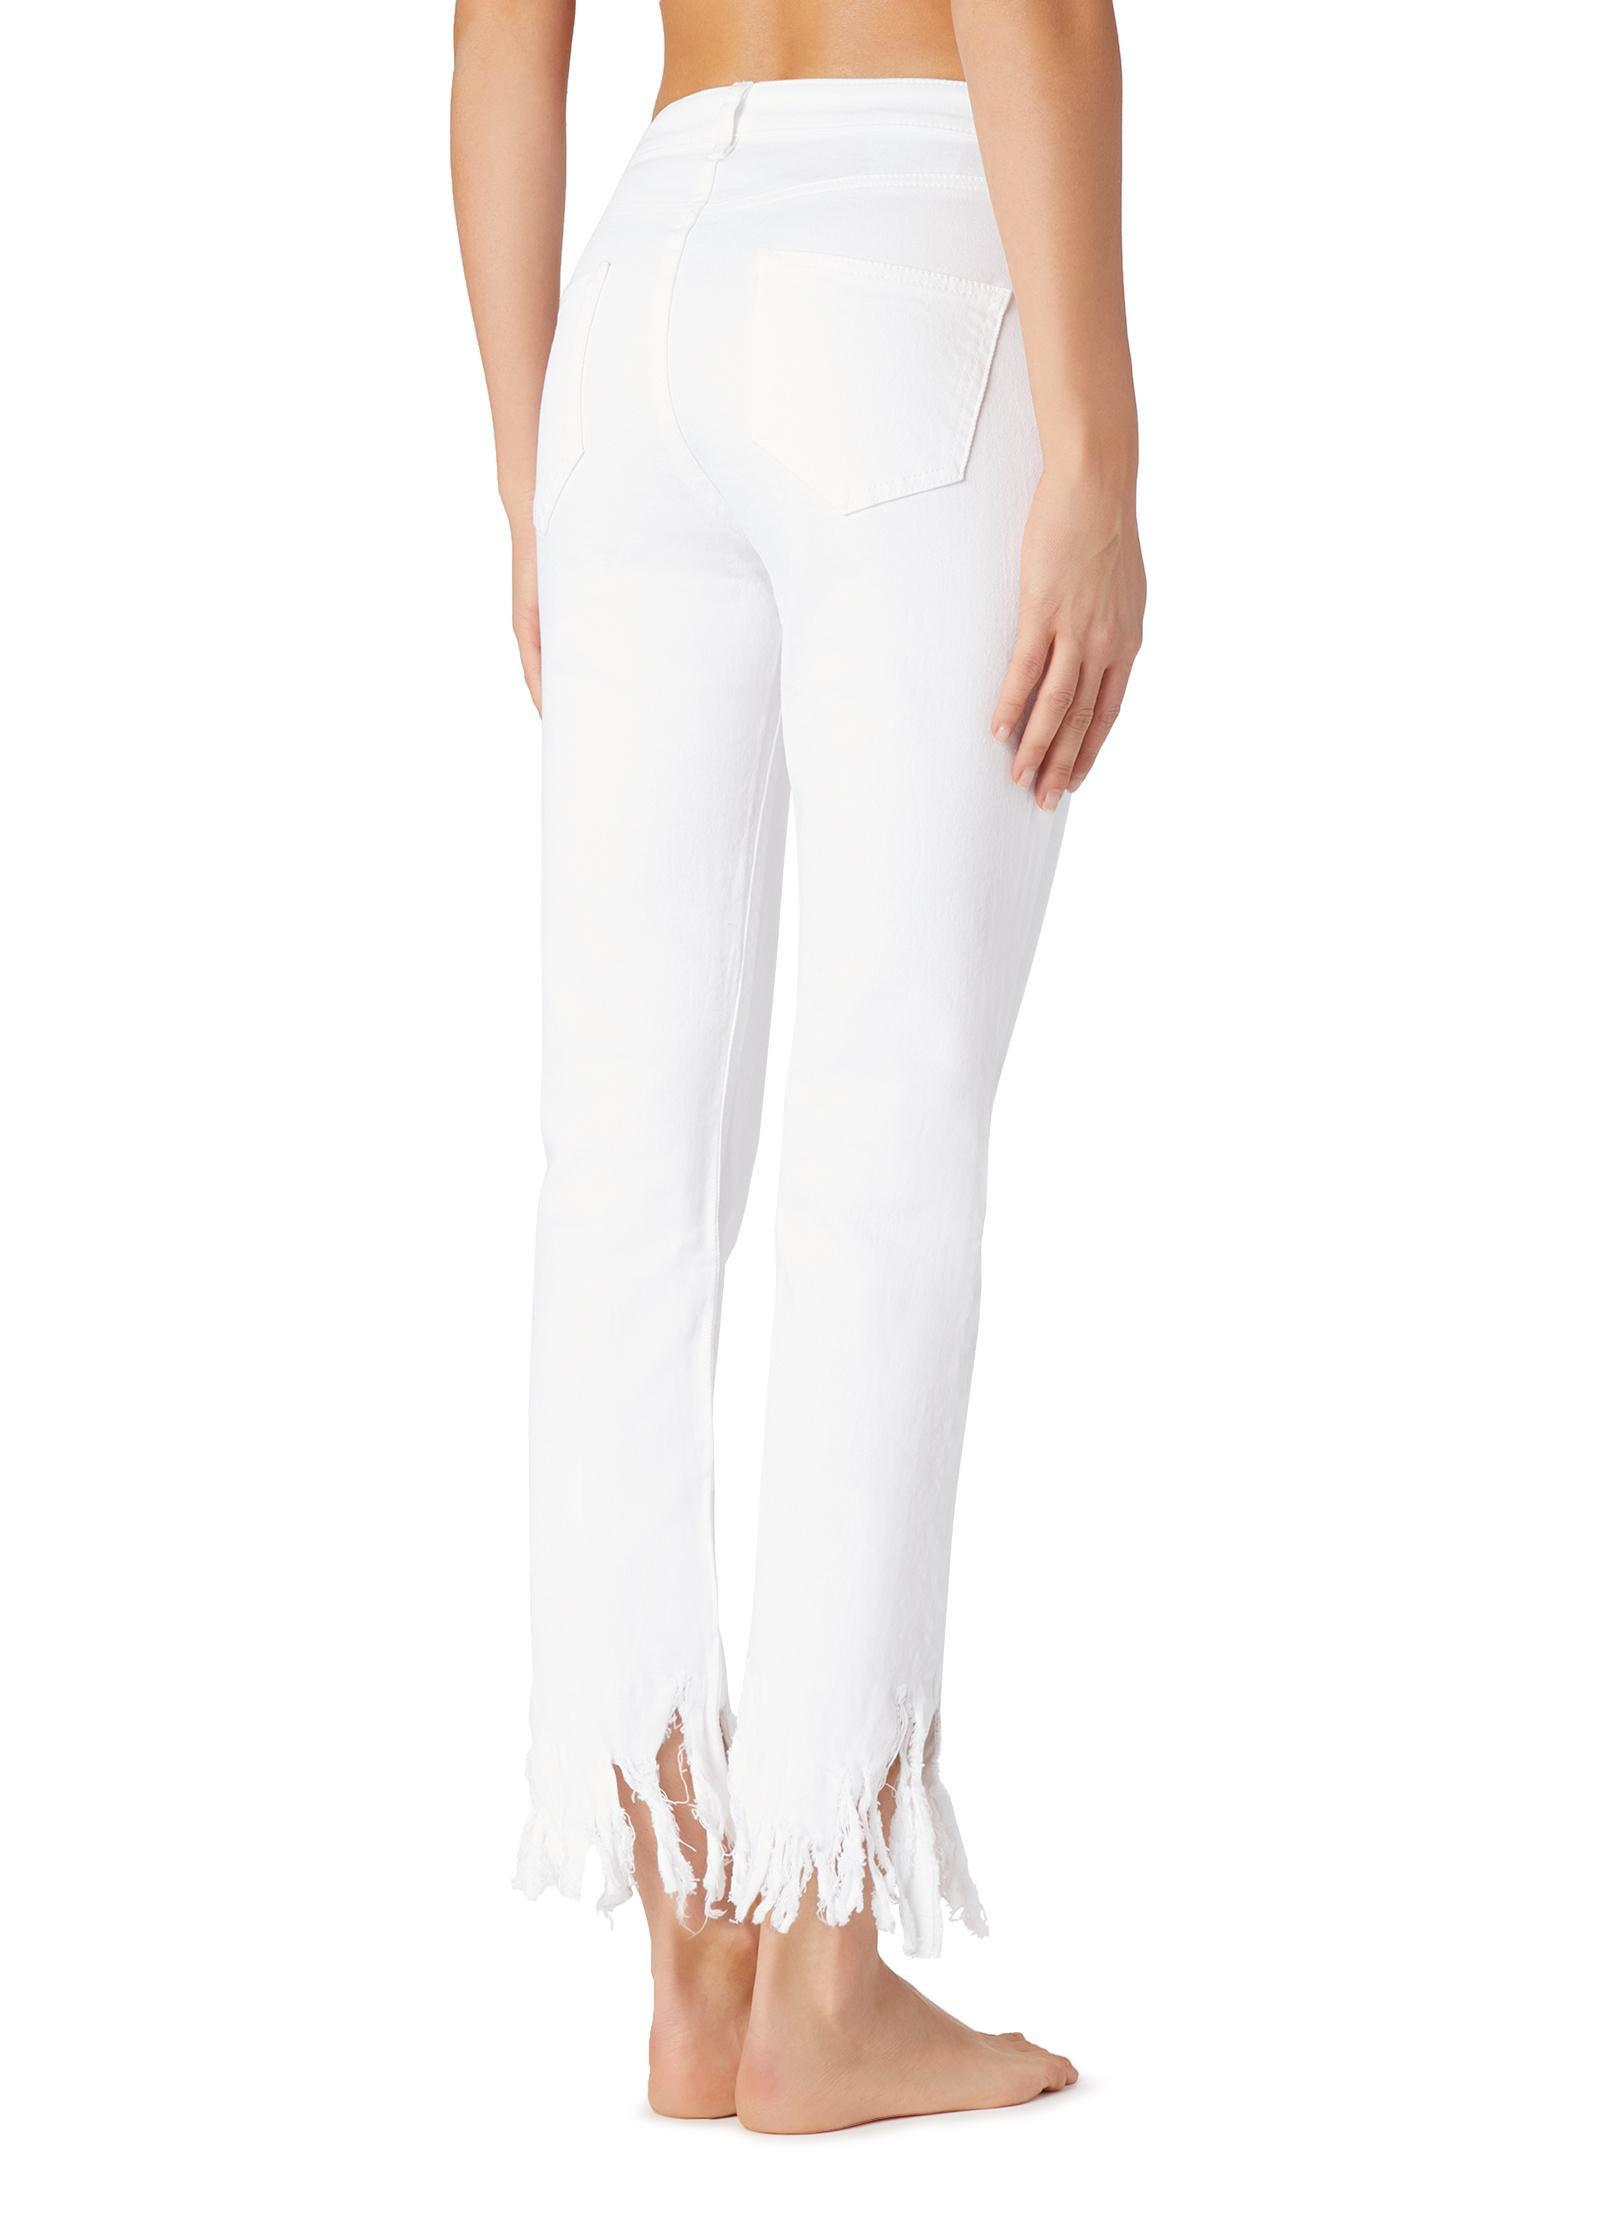 51257200e Lyst - Calzedonia Frayed Jeans in White